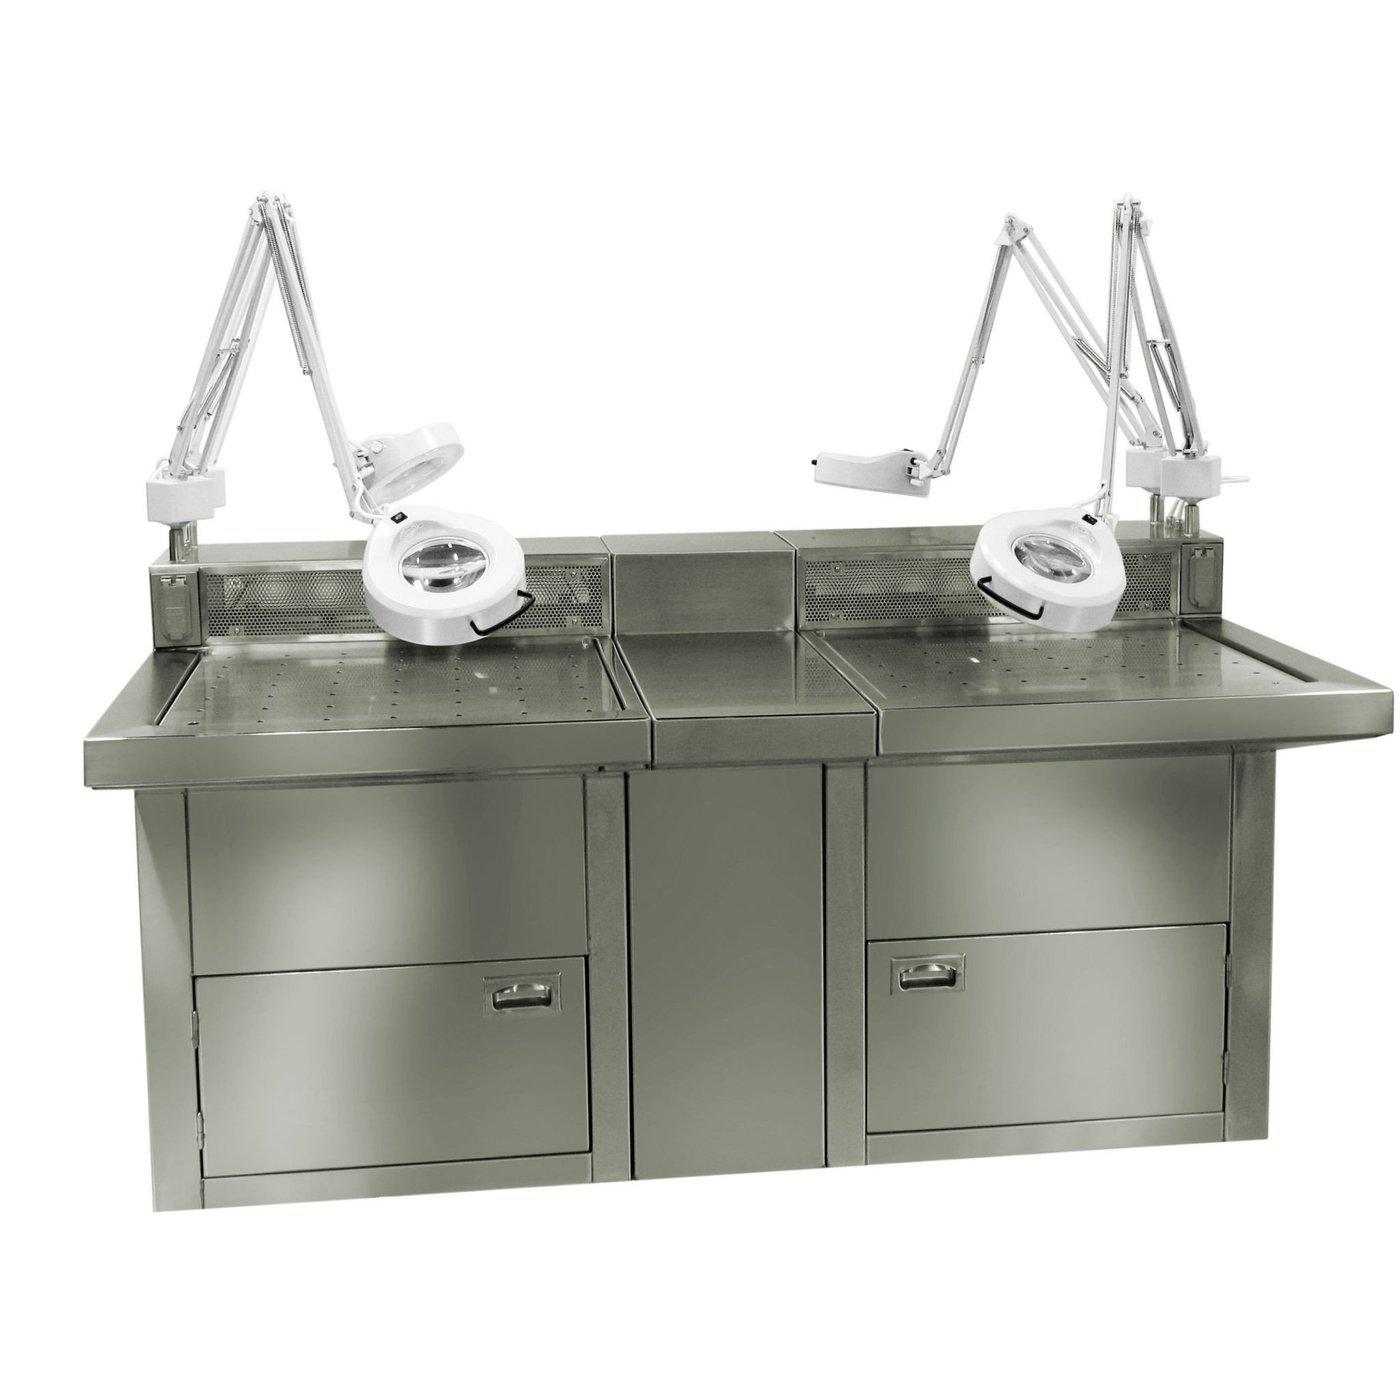 Multi-user Backdraft/Downdraft Station-Necropsy Dissection Tables-Mortech Manufacturing Company Inc. Quality Stainless Steel Autopsy, Morgue, Funeral Home, Necropsy, Veterinary / Anatomy, Dissection Equipment and Accessories